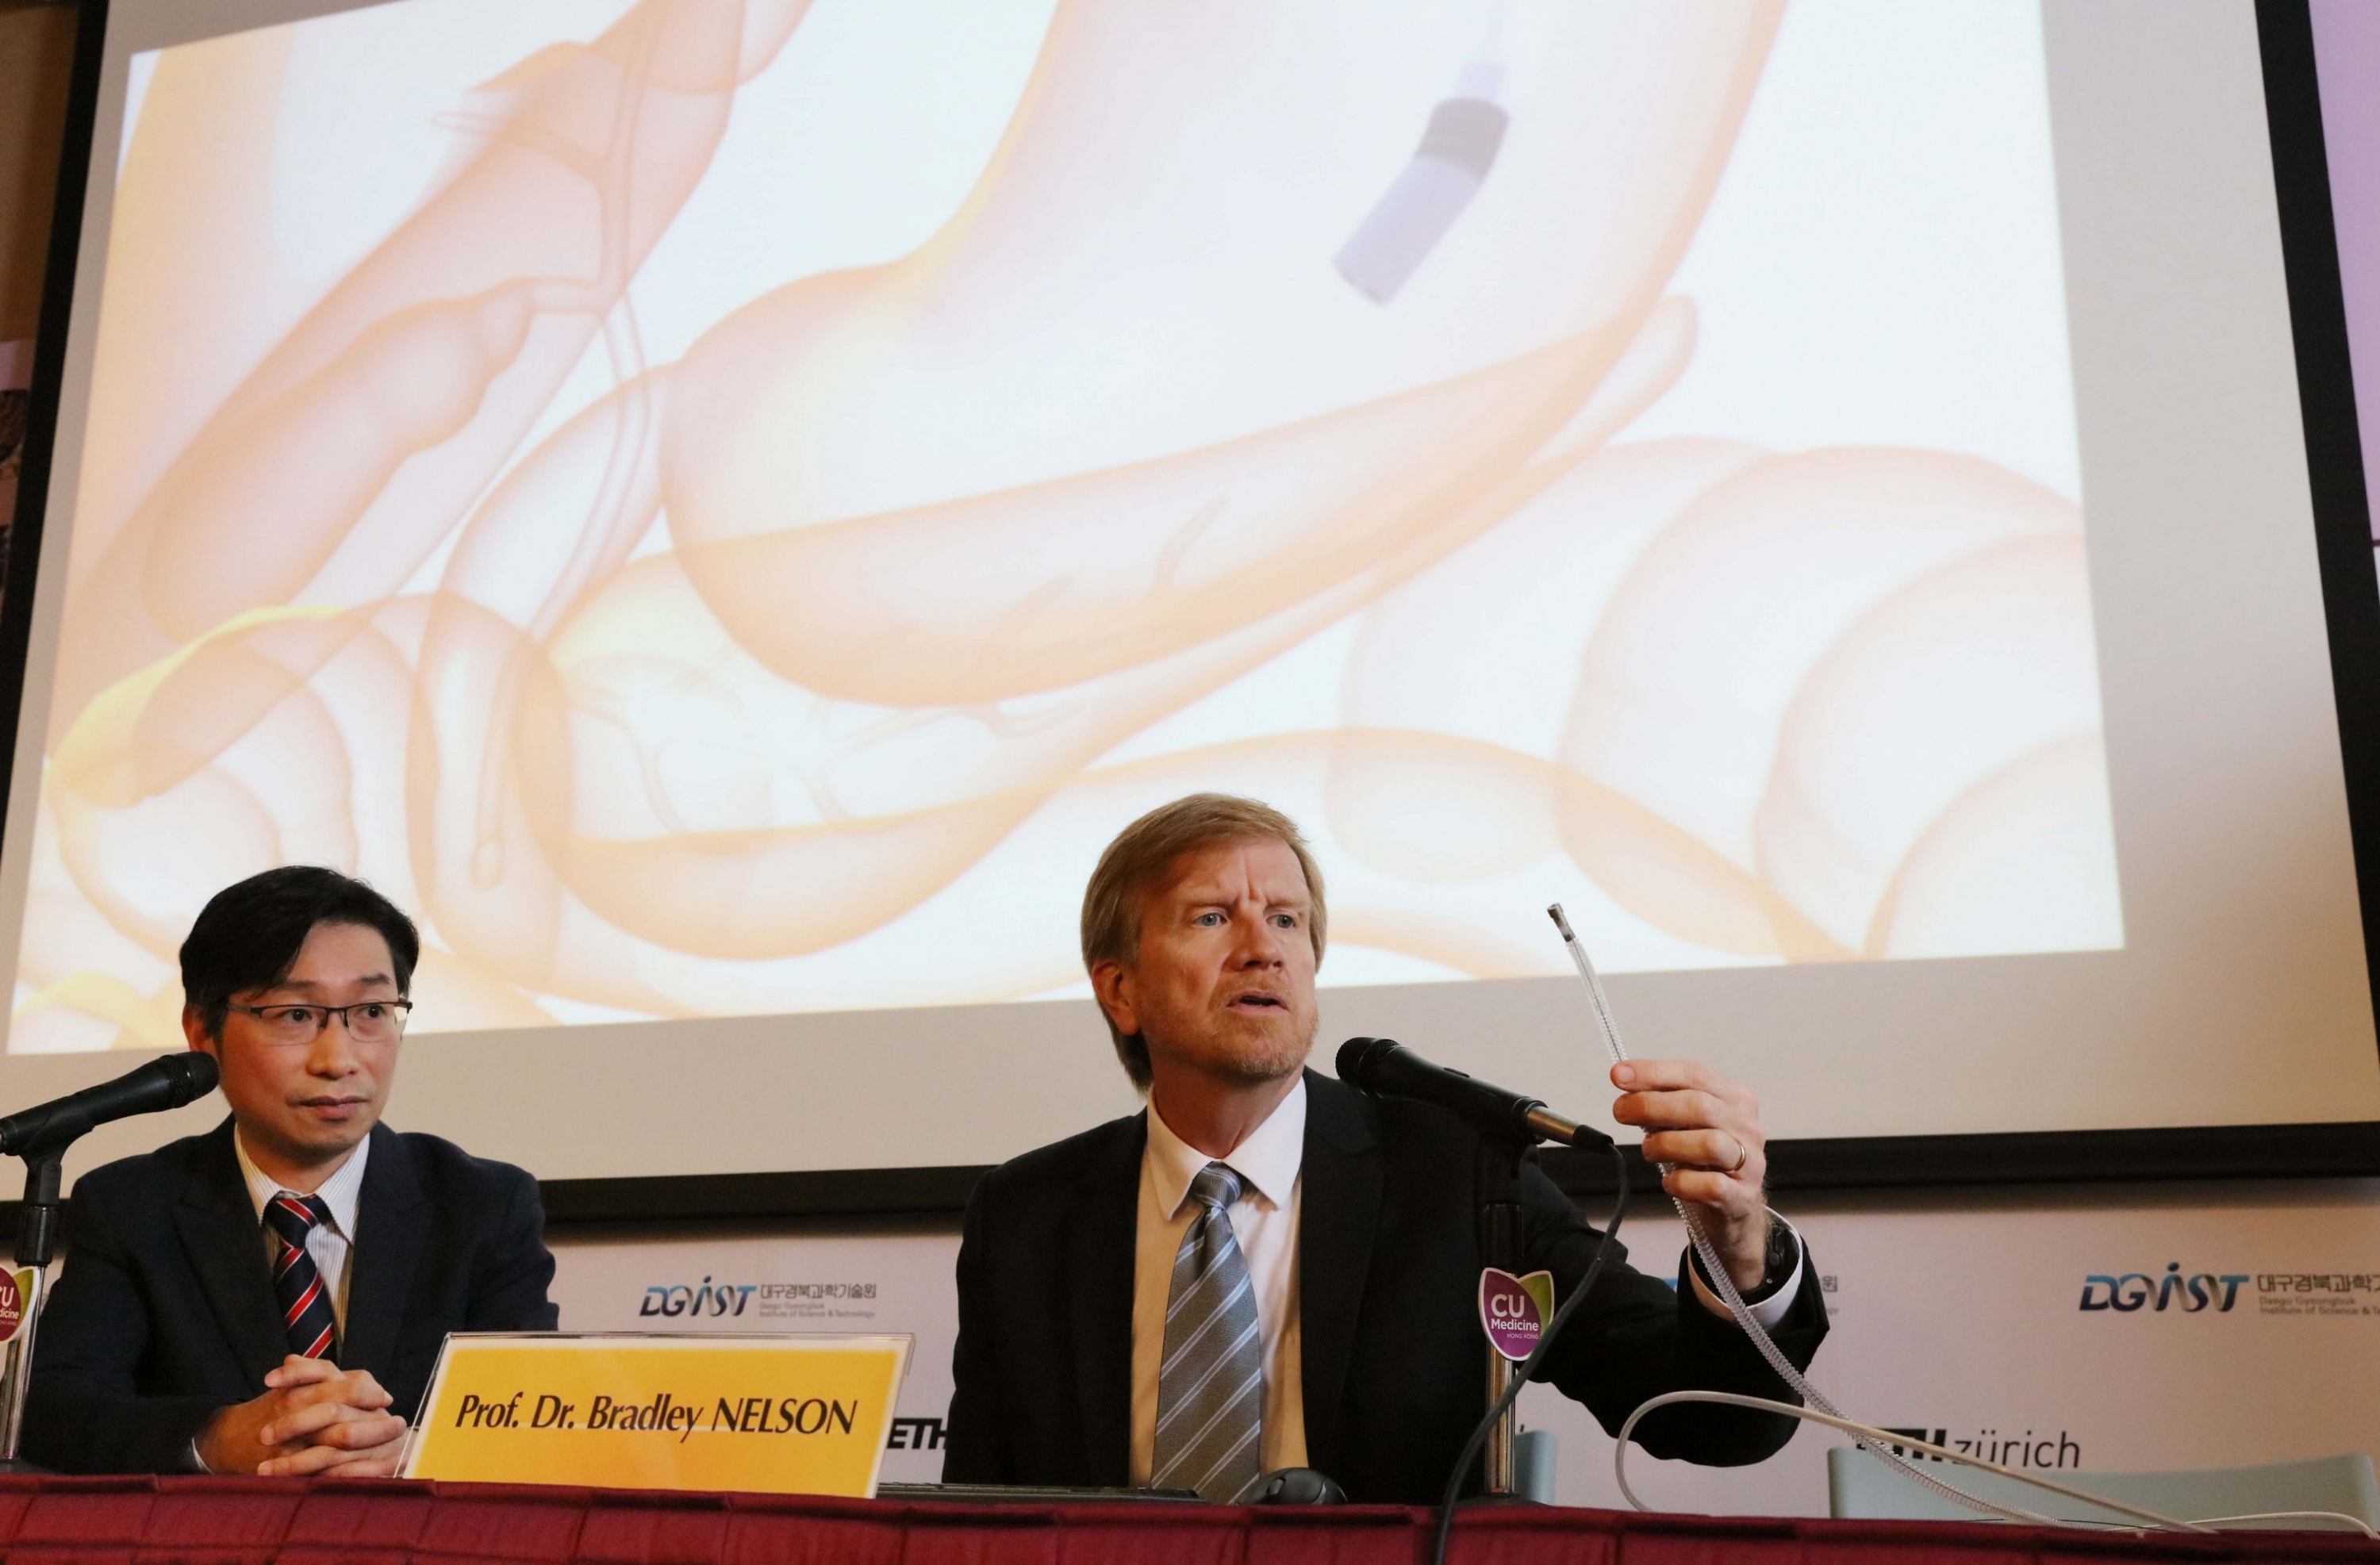 Prof. Dr. Bradley NELSON (right), Director of the Multi-Scale Robotics Lab, Institute of Robotics and Intelligent Systems, ETH Zurich displays animation of an innovative magnetic guided endoscope for small intestine check-up